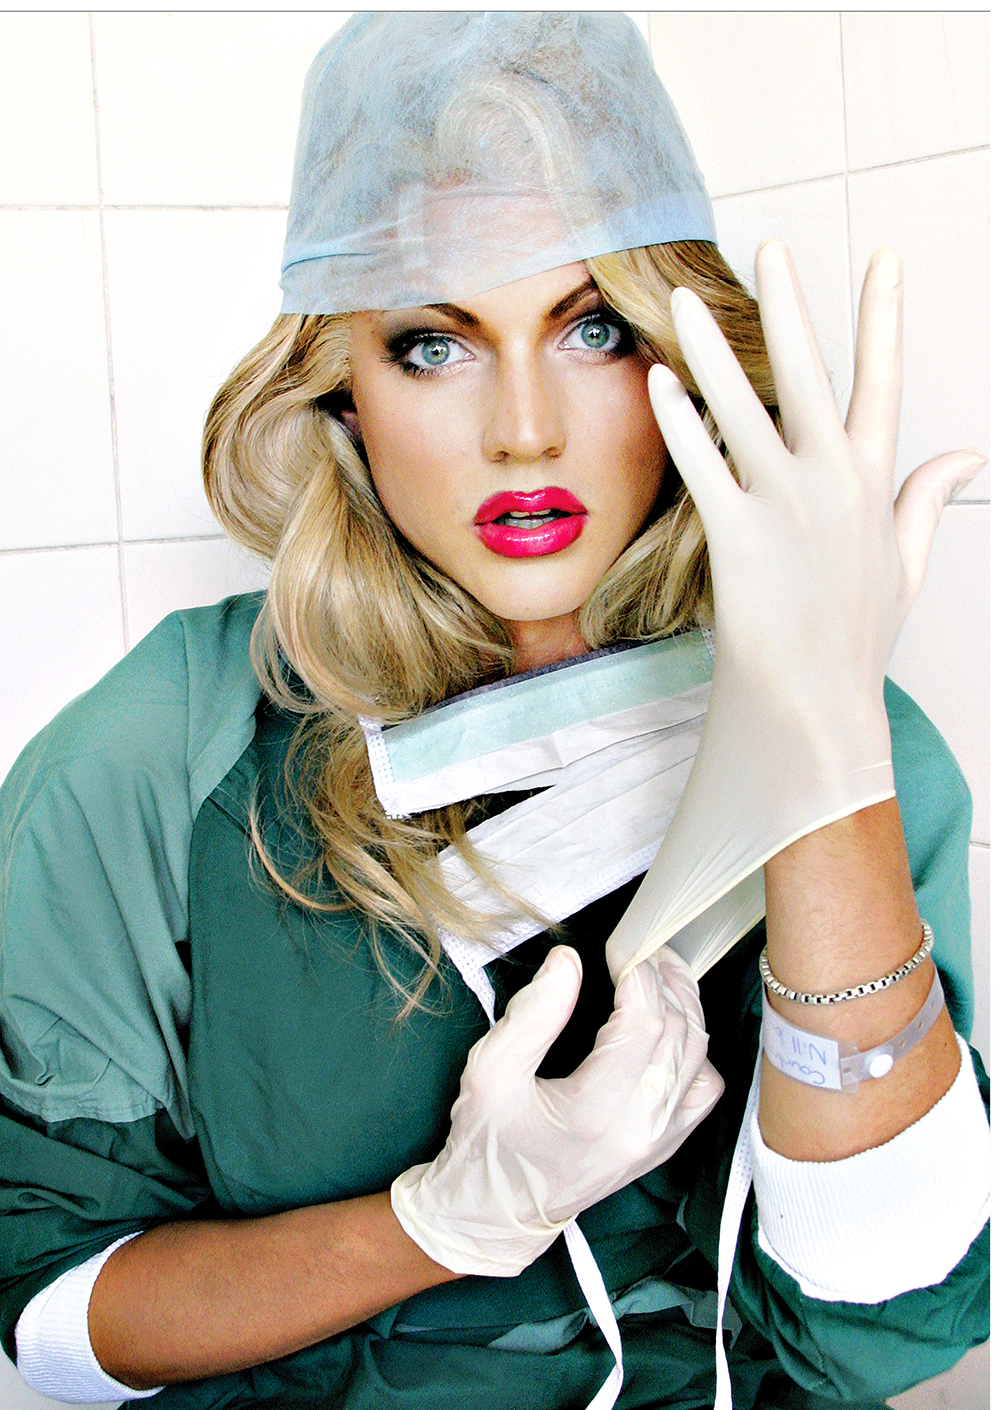 courtney surgeon 2.jpg